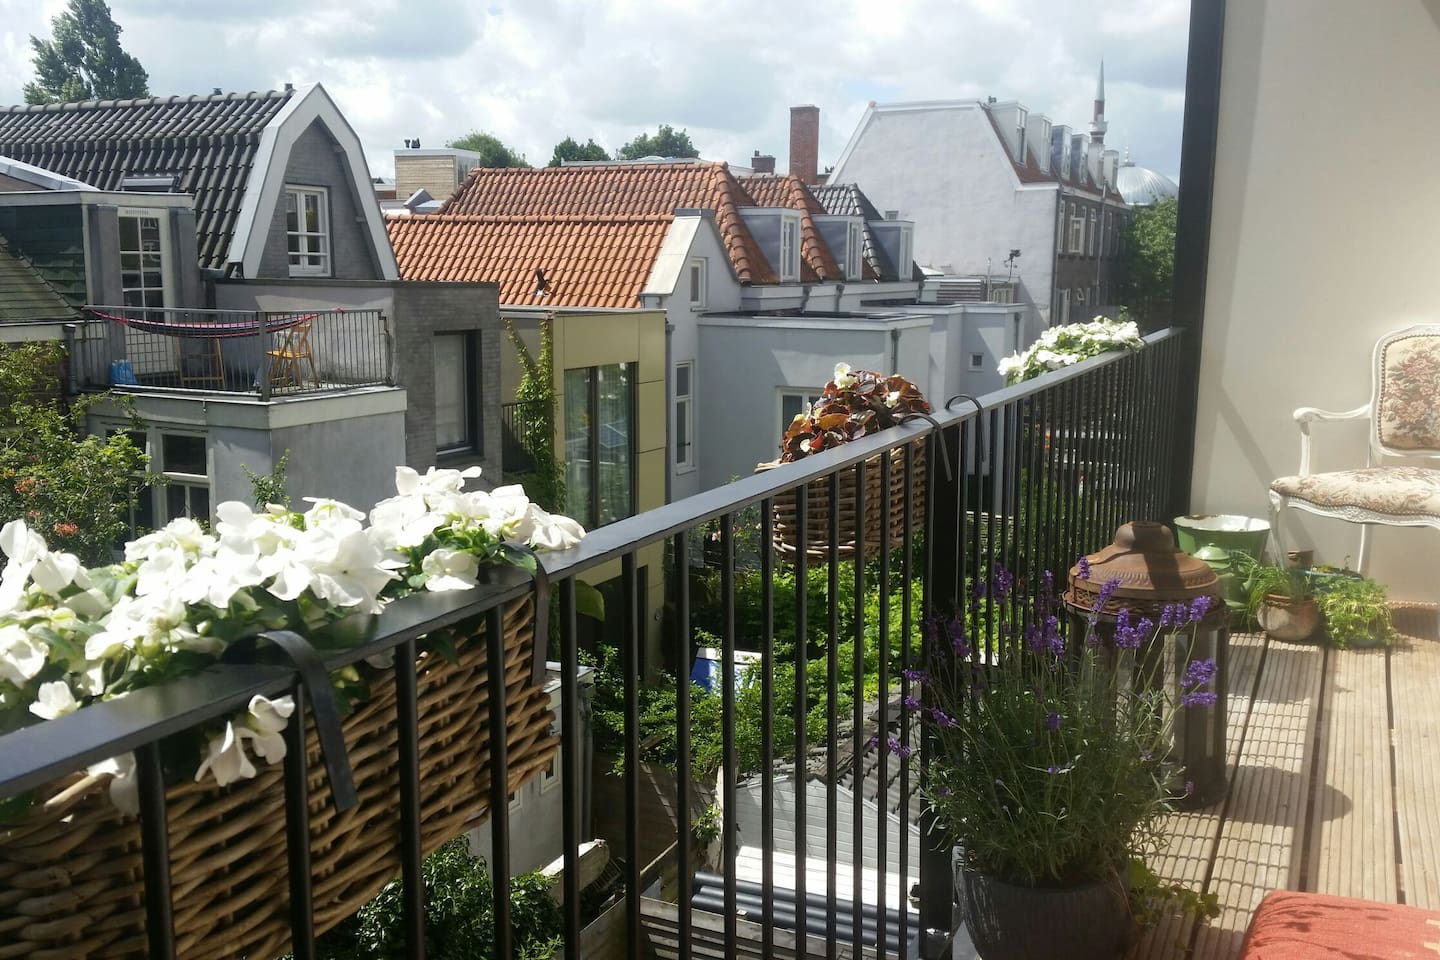 Our spacious Amsterdam garden (ok...., a balcony :) Green in summer, cold in winter, but always nice to be outside.